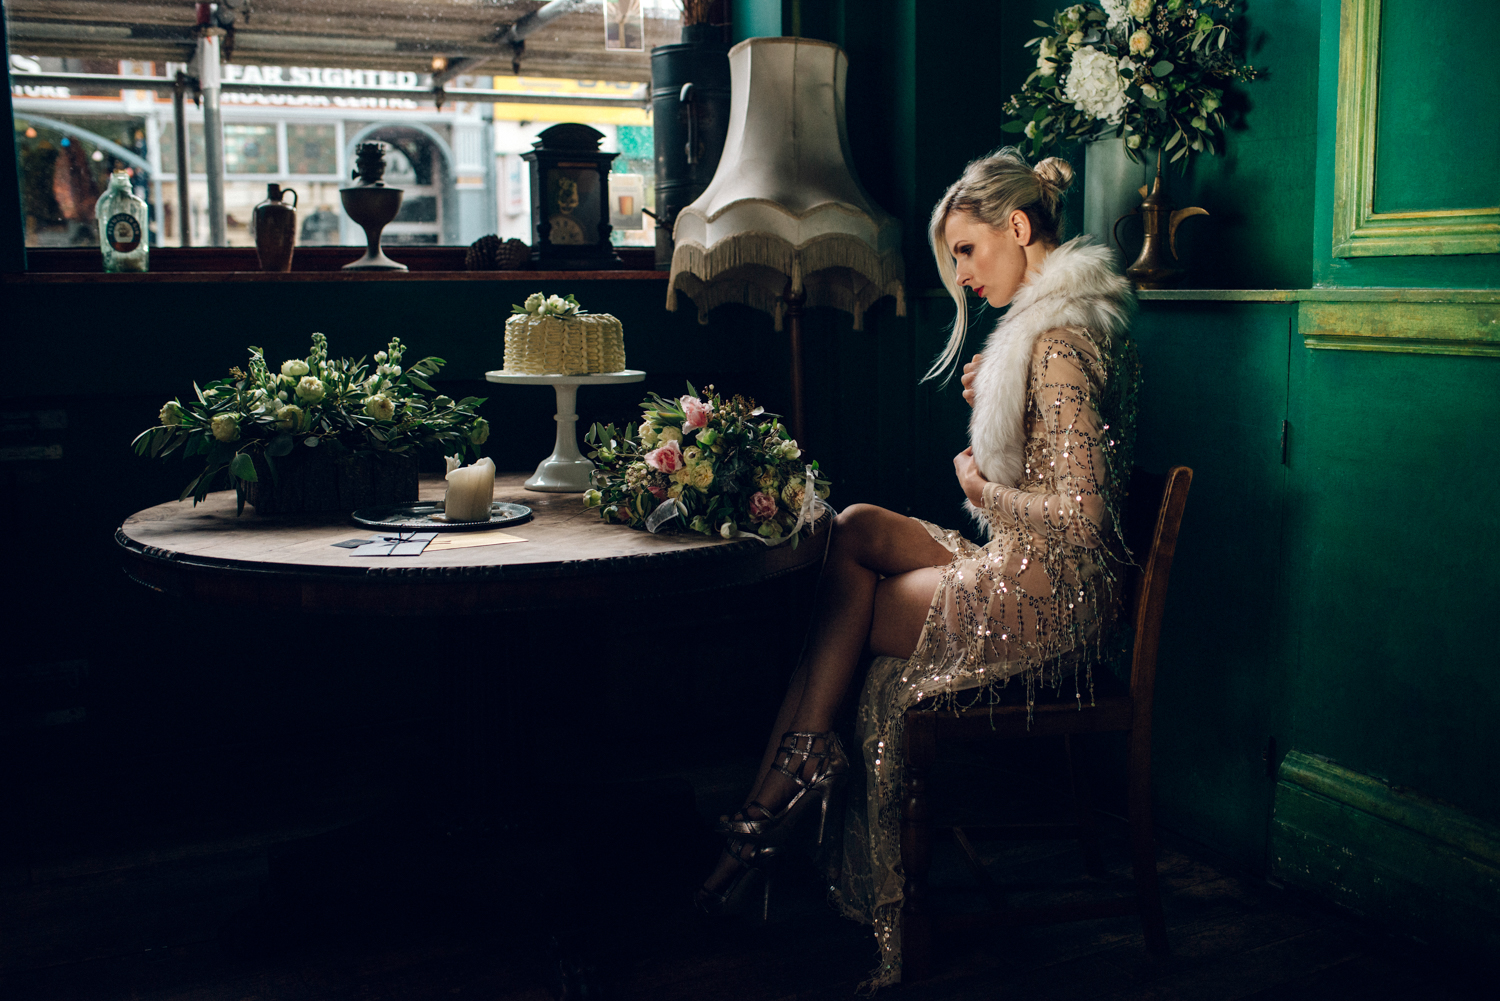 Margo Ryszczuk Photography - Its all about the glitter, sparkle and shine art deco inspired wedding shoot 8653874